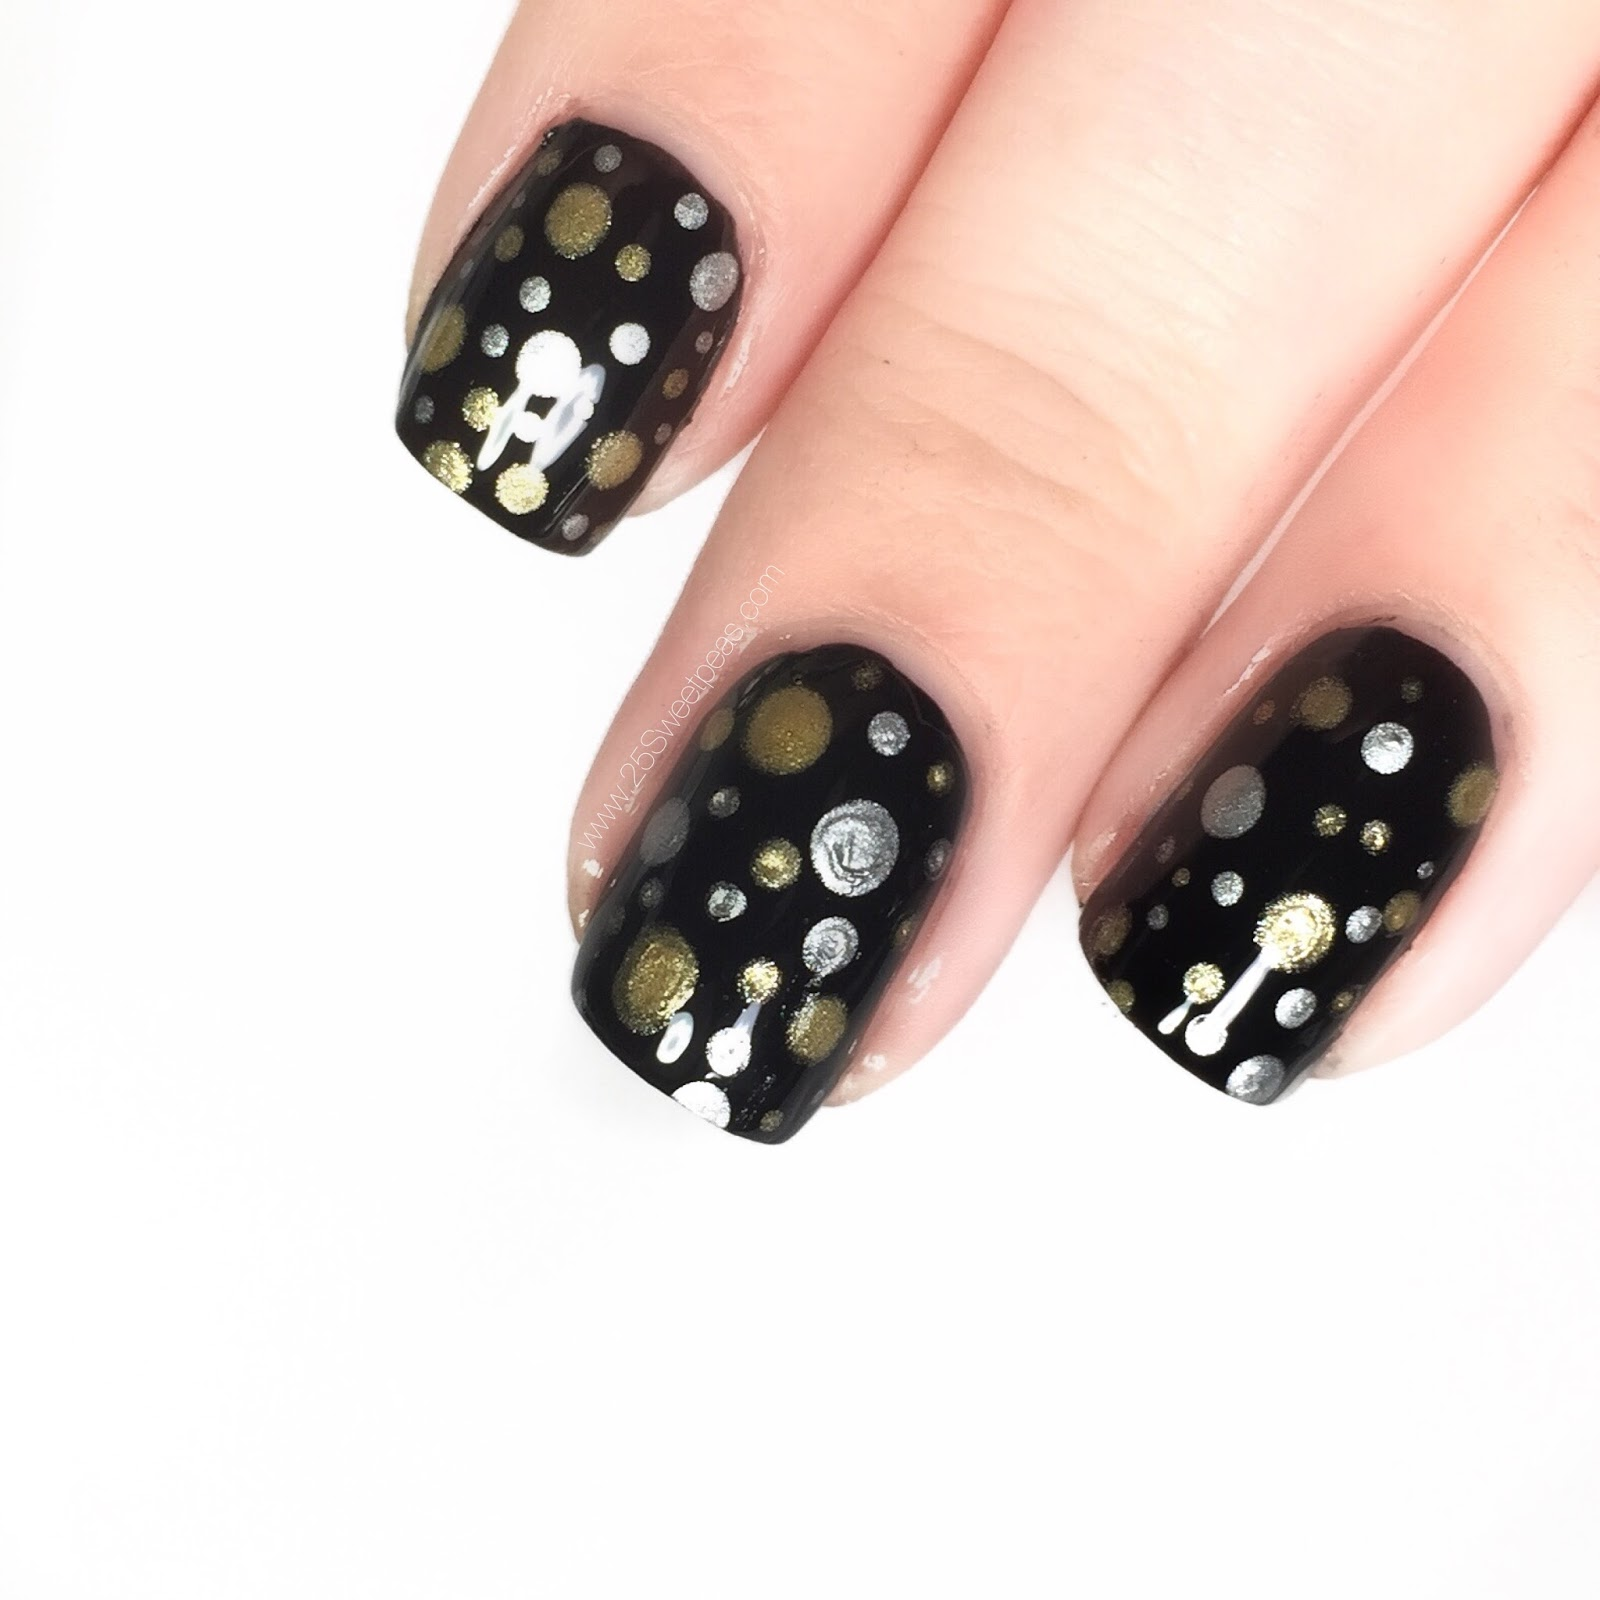 3 NYE Nail Art Looks | Using Only Dotting Tools - 25 Sweetpeas